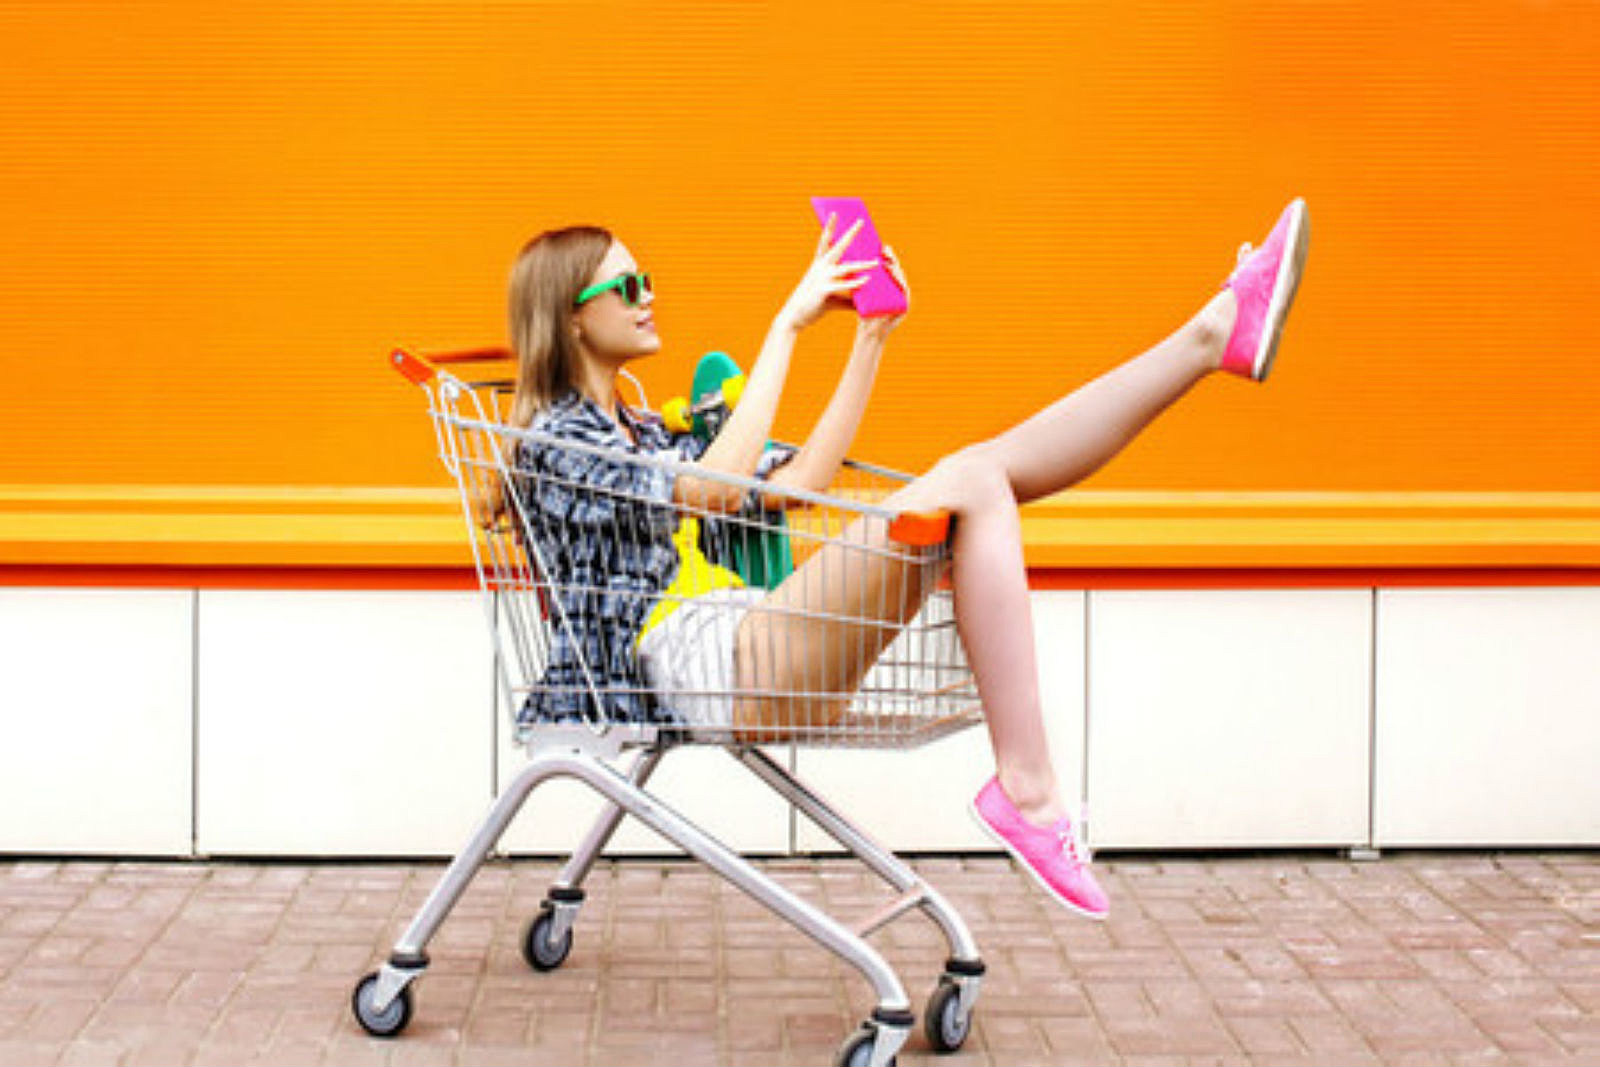 Best Background Music for Shopping